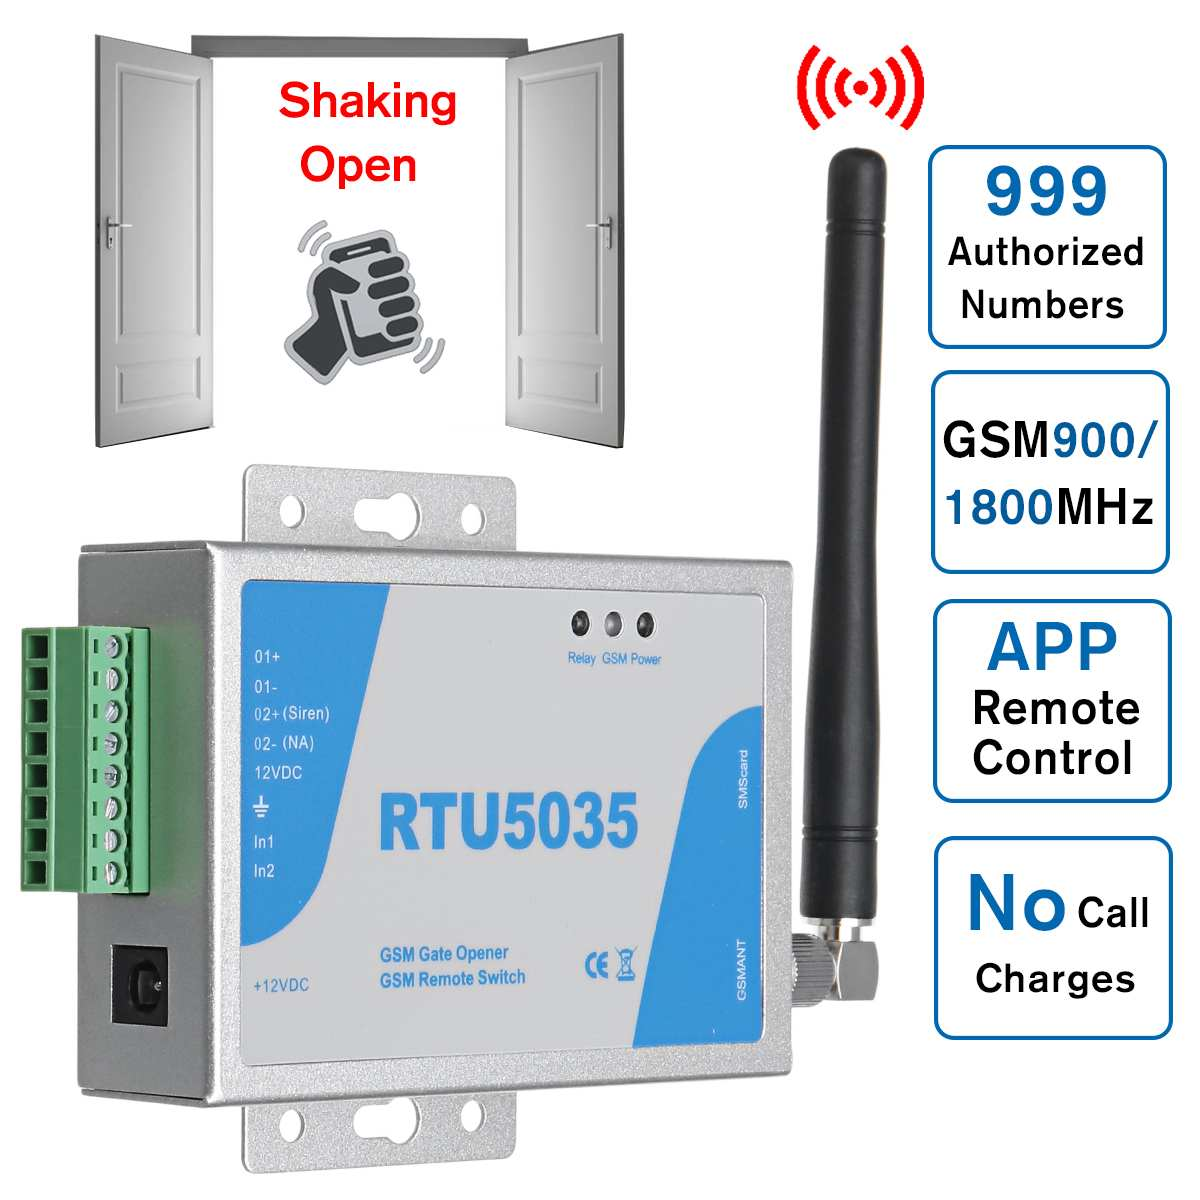 GSM Gate Opener Relay Switch RTU5035 Operator Sliding Remote Access Phone Shaking Control Door Opening Function Wireless Opener